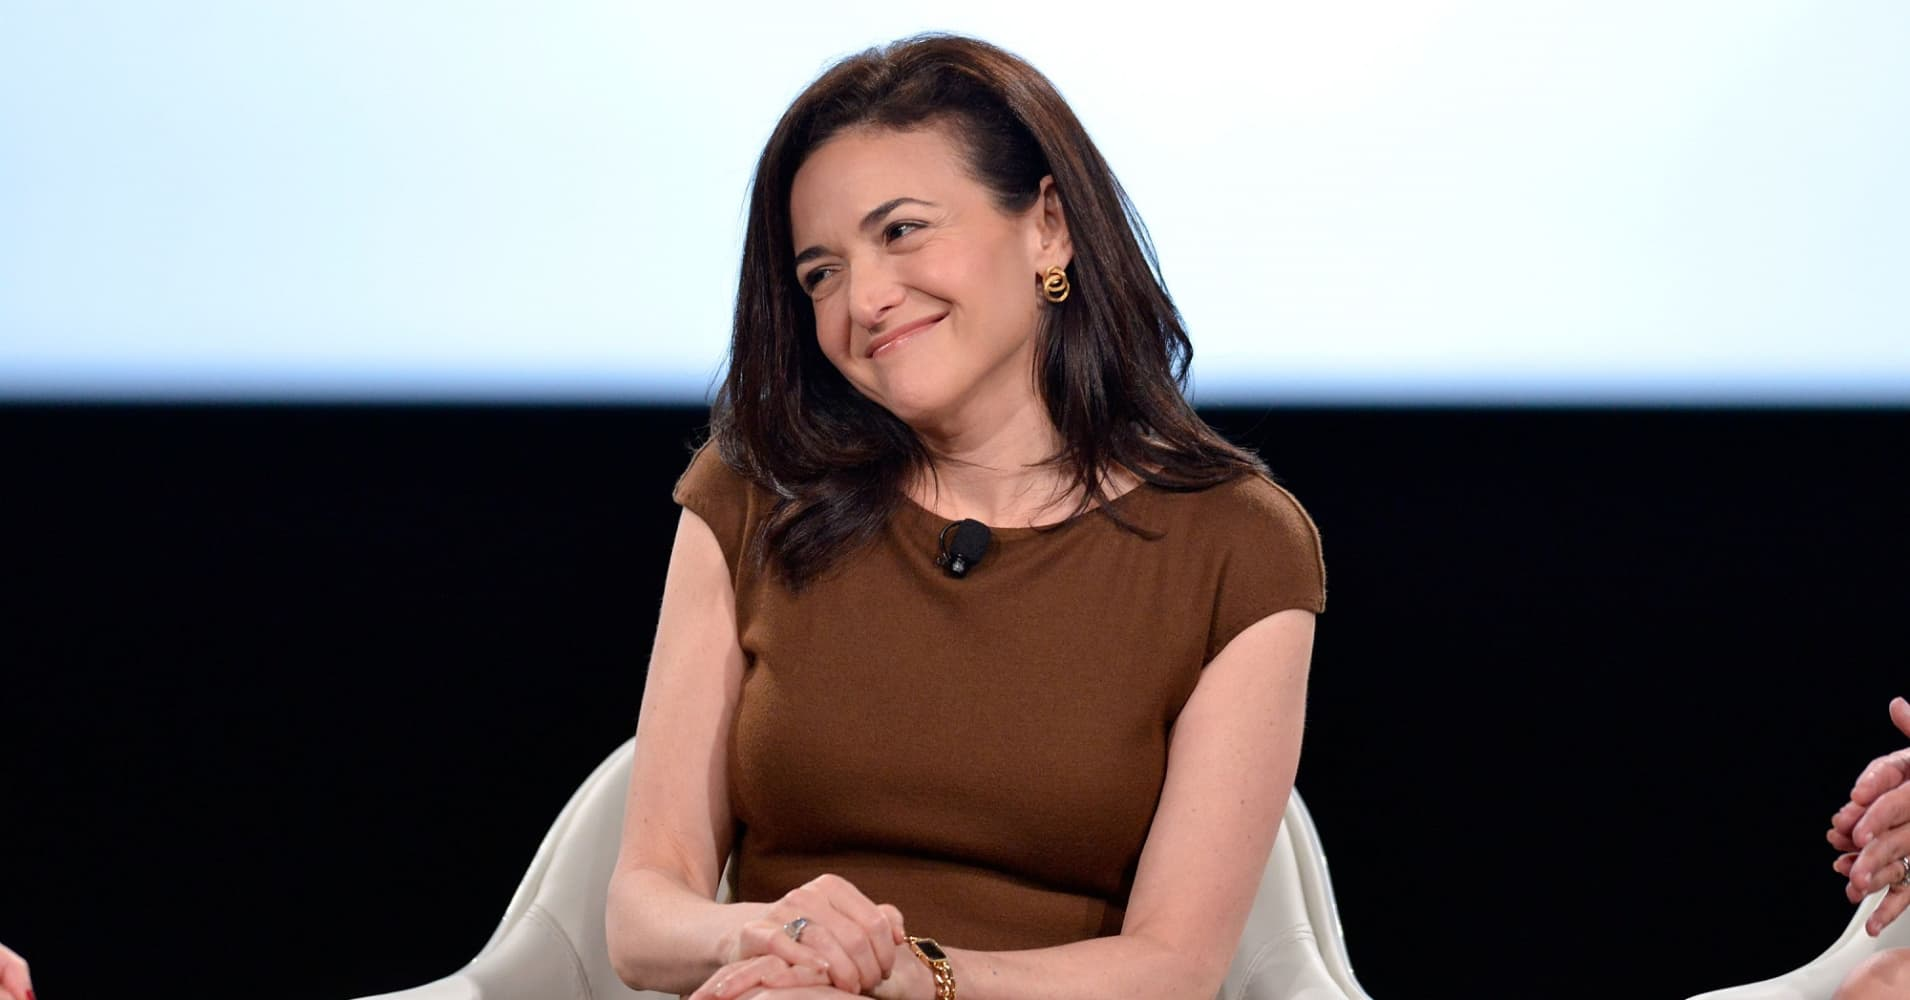 Facebook COO Sheryl Sandberg at 2017 MAKERS Conference